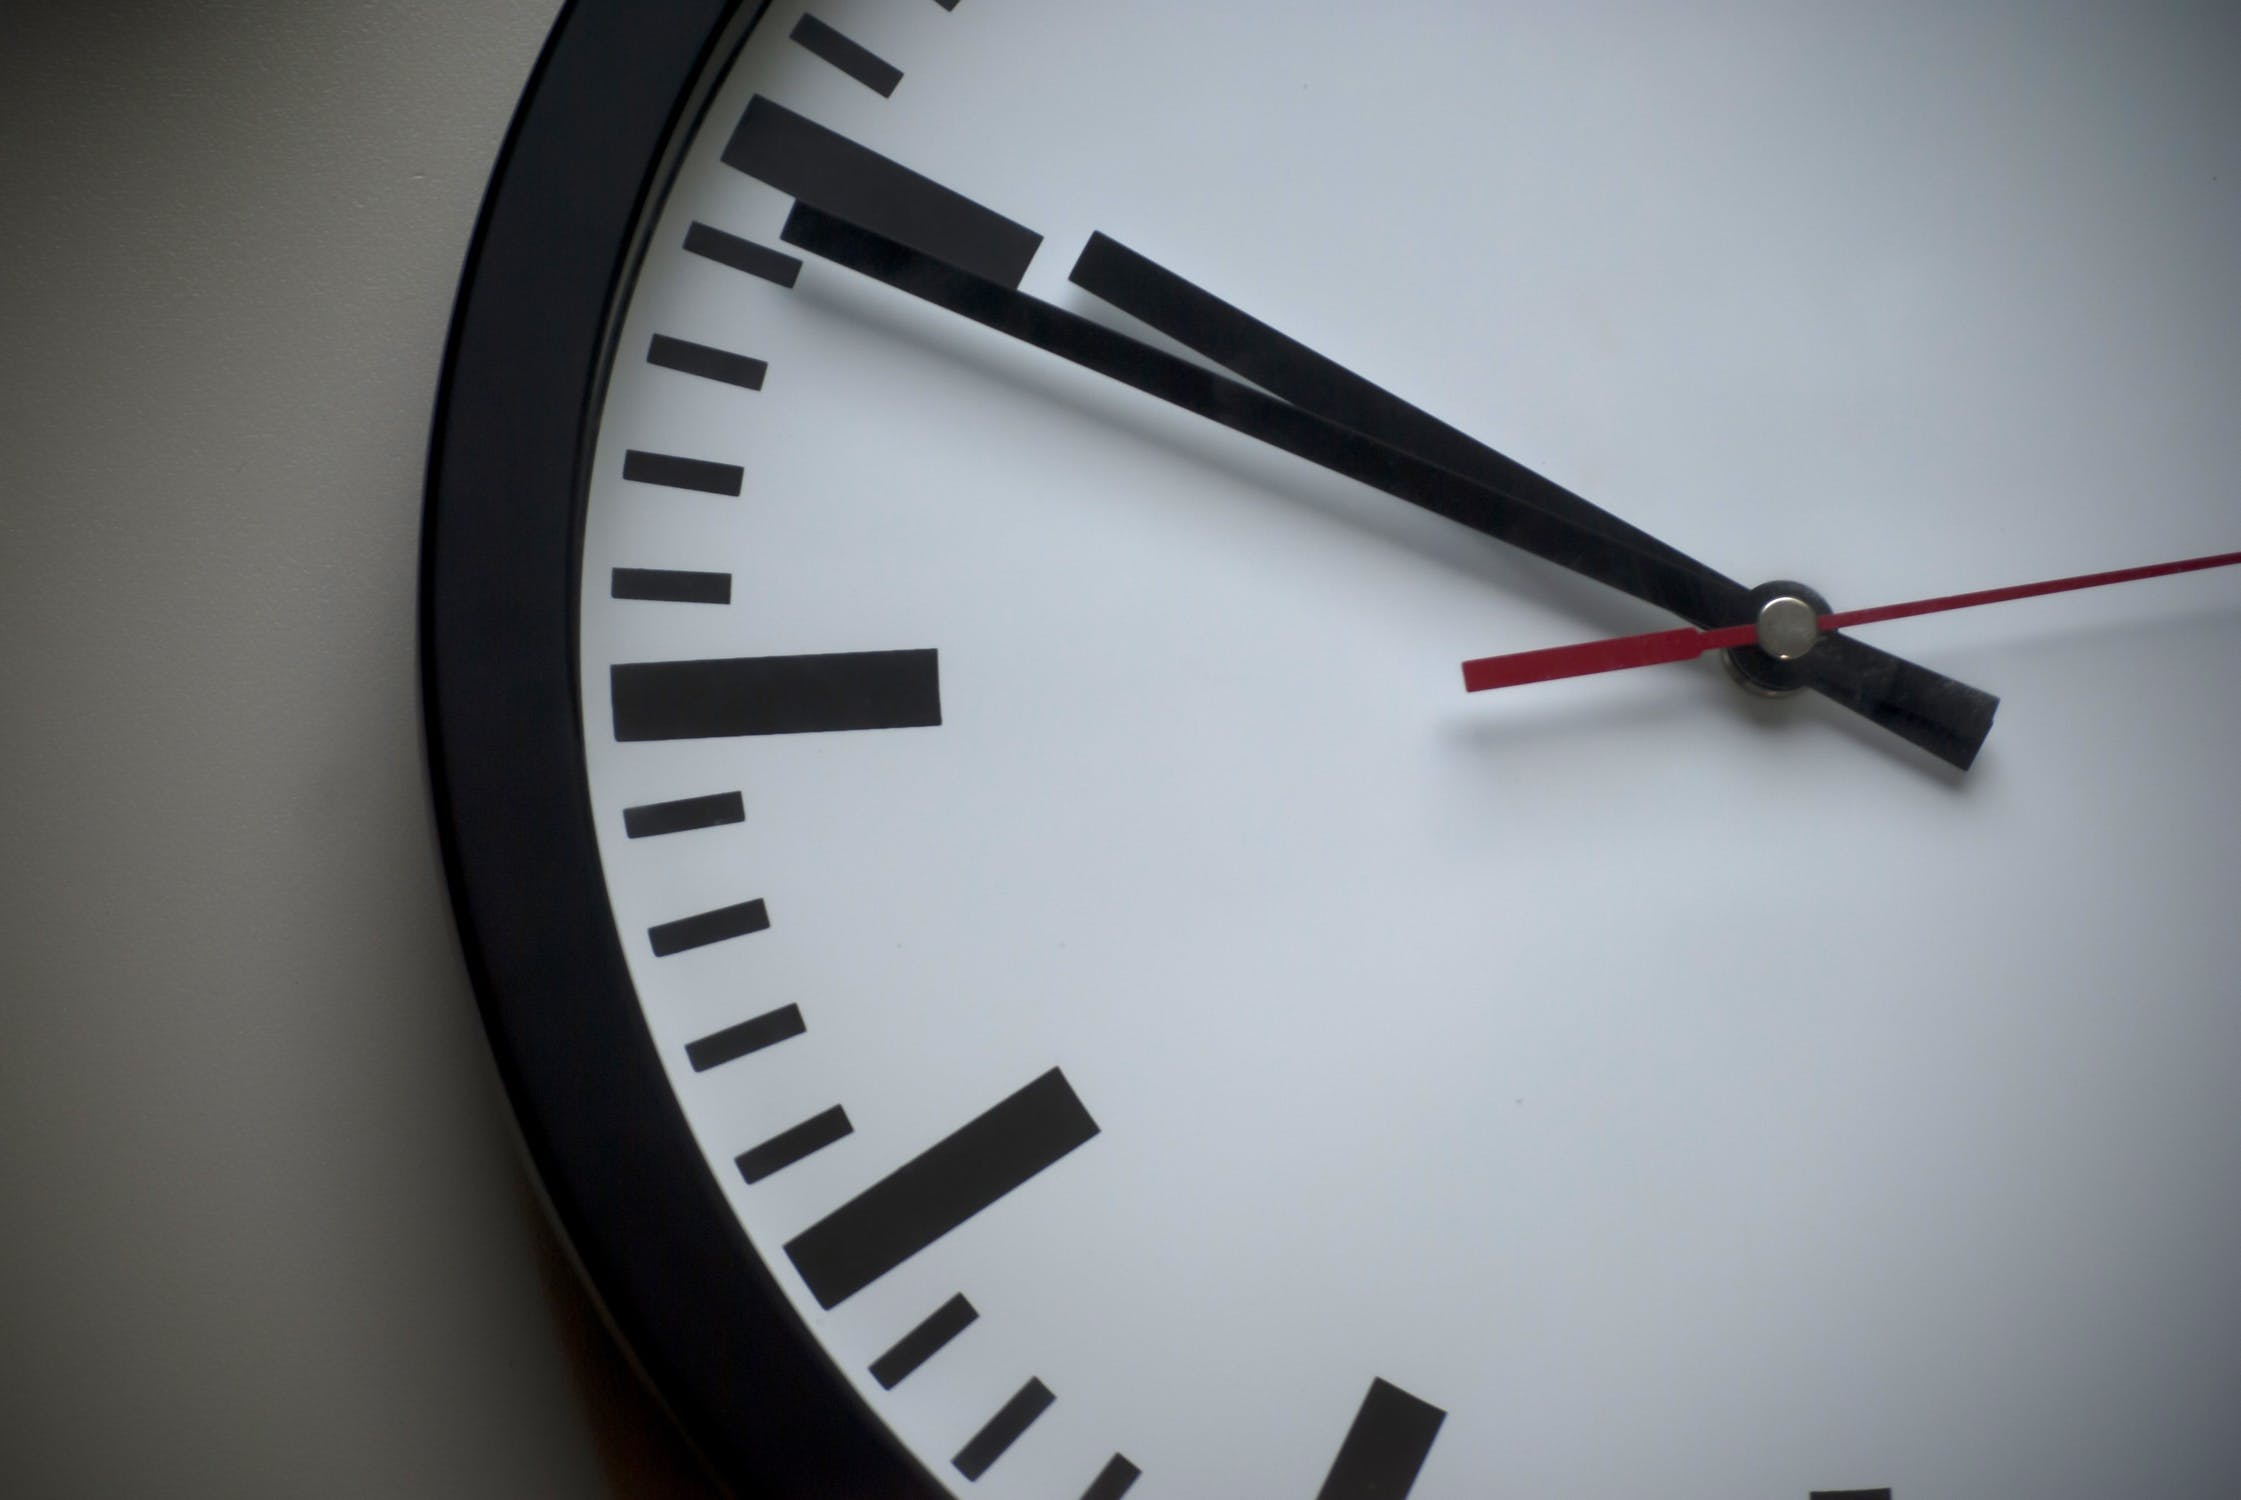 A clock - because you need to figure out the time frame you will need to prepare for moving abroad.